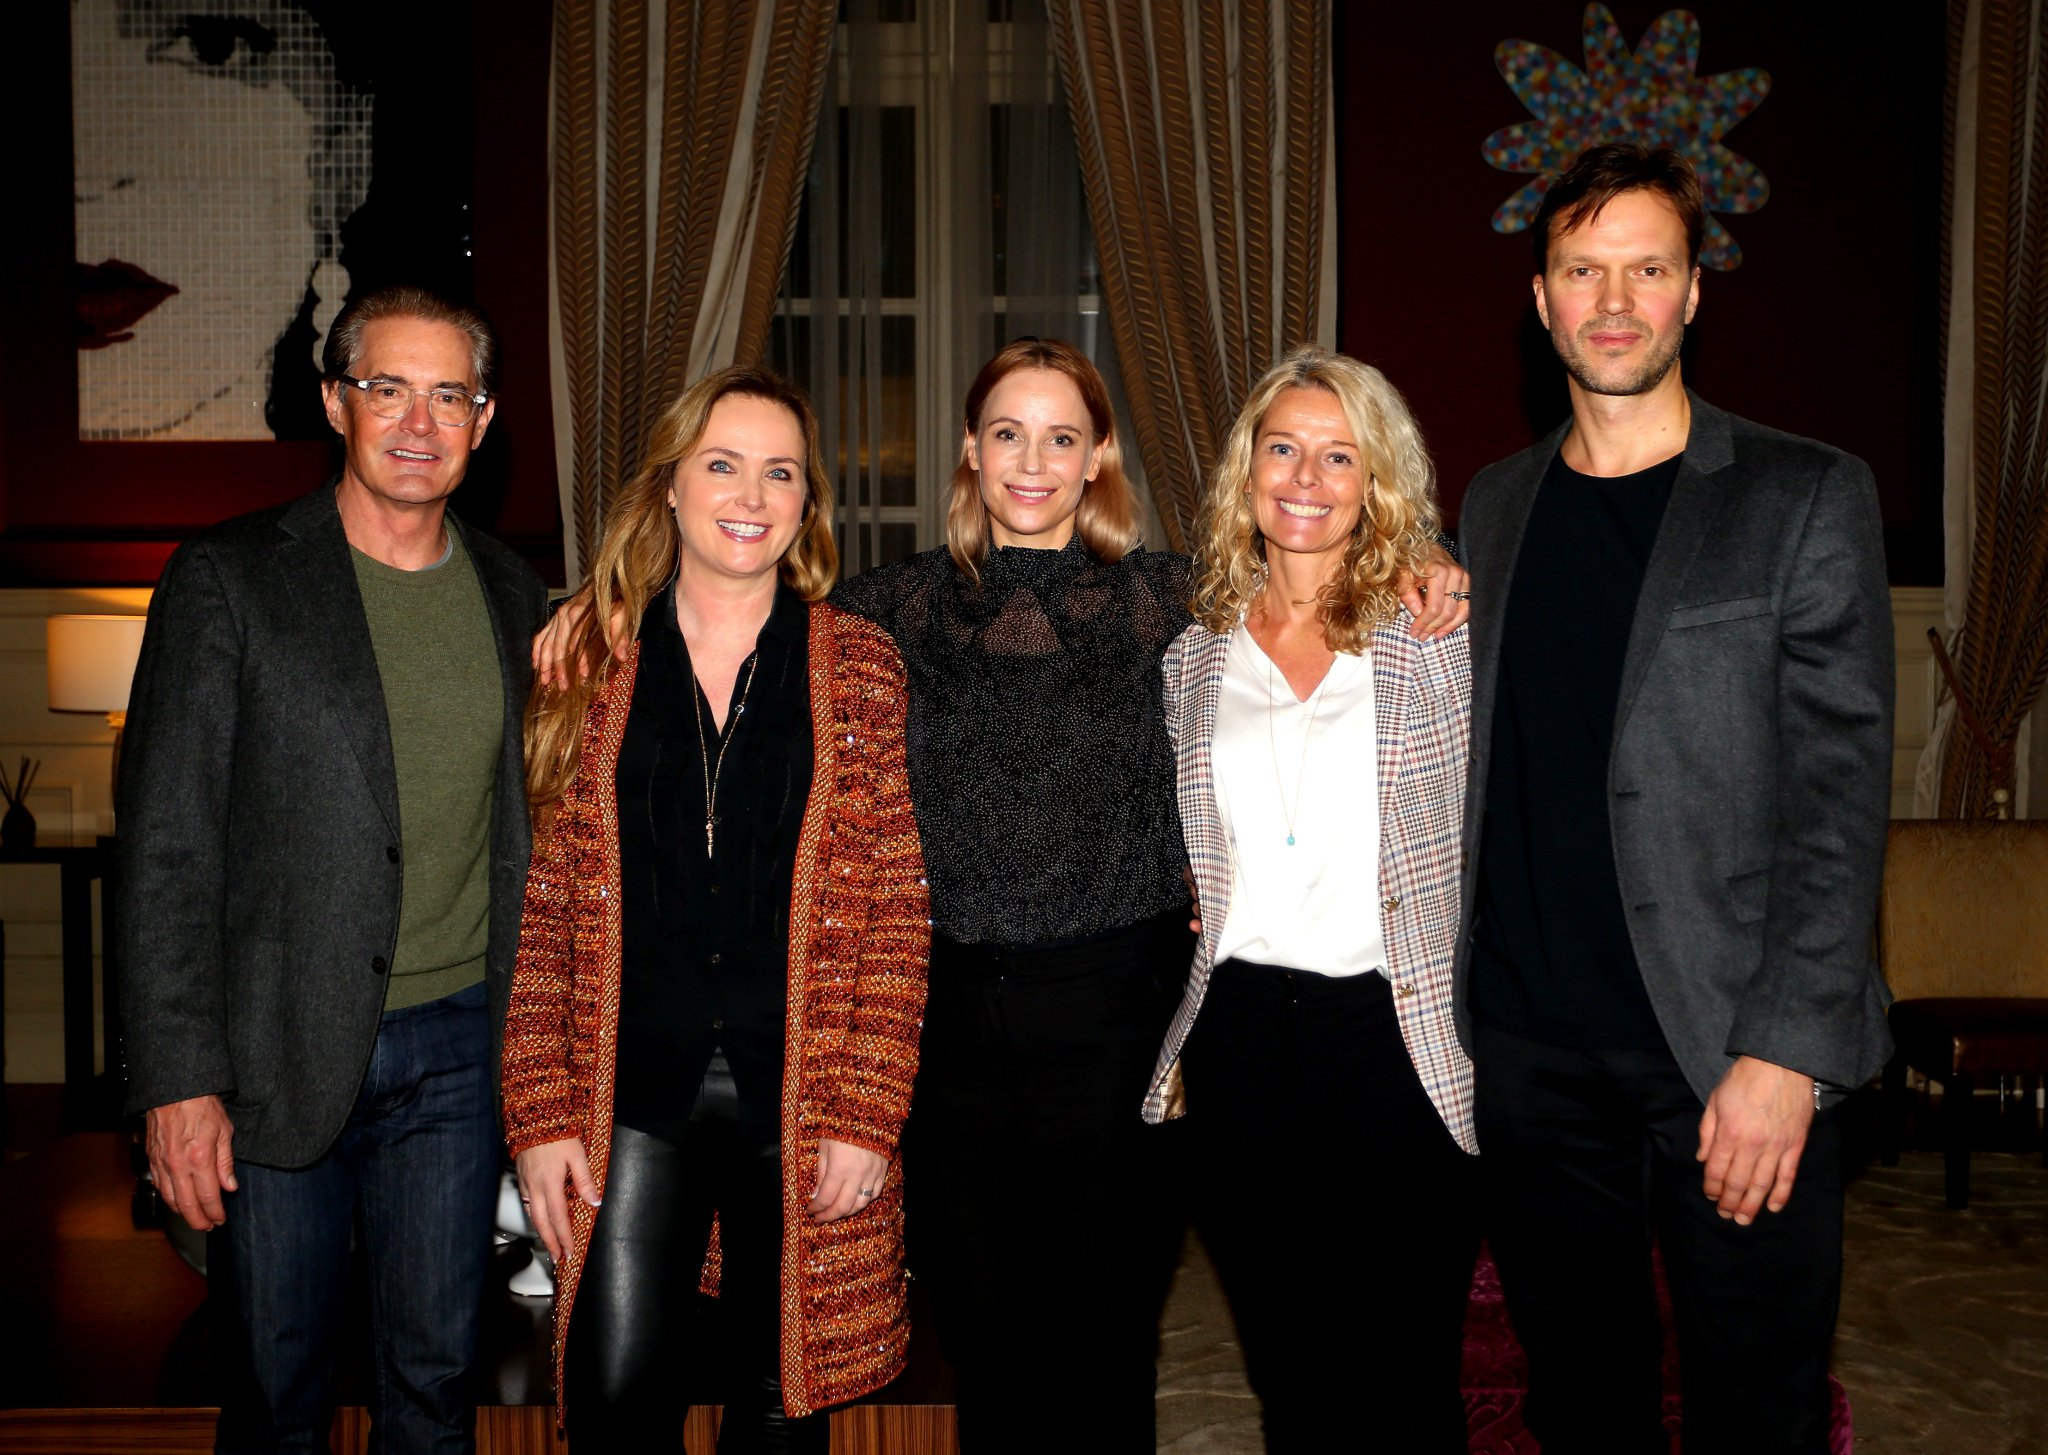 Beta Film Gmbh On Twitter Just Back From Proudly Presenting The Upcoming High End Drama Series Atlantic Crossing W Main Cast Kyle Maclachlan Sofia Helin Dir Alexandereik Cinenord S Founder Silje Hopland Eik At Contentlondon18